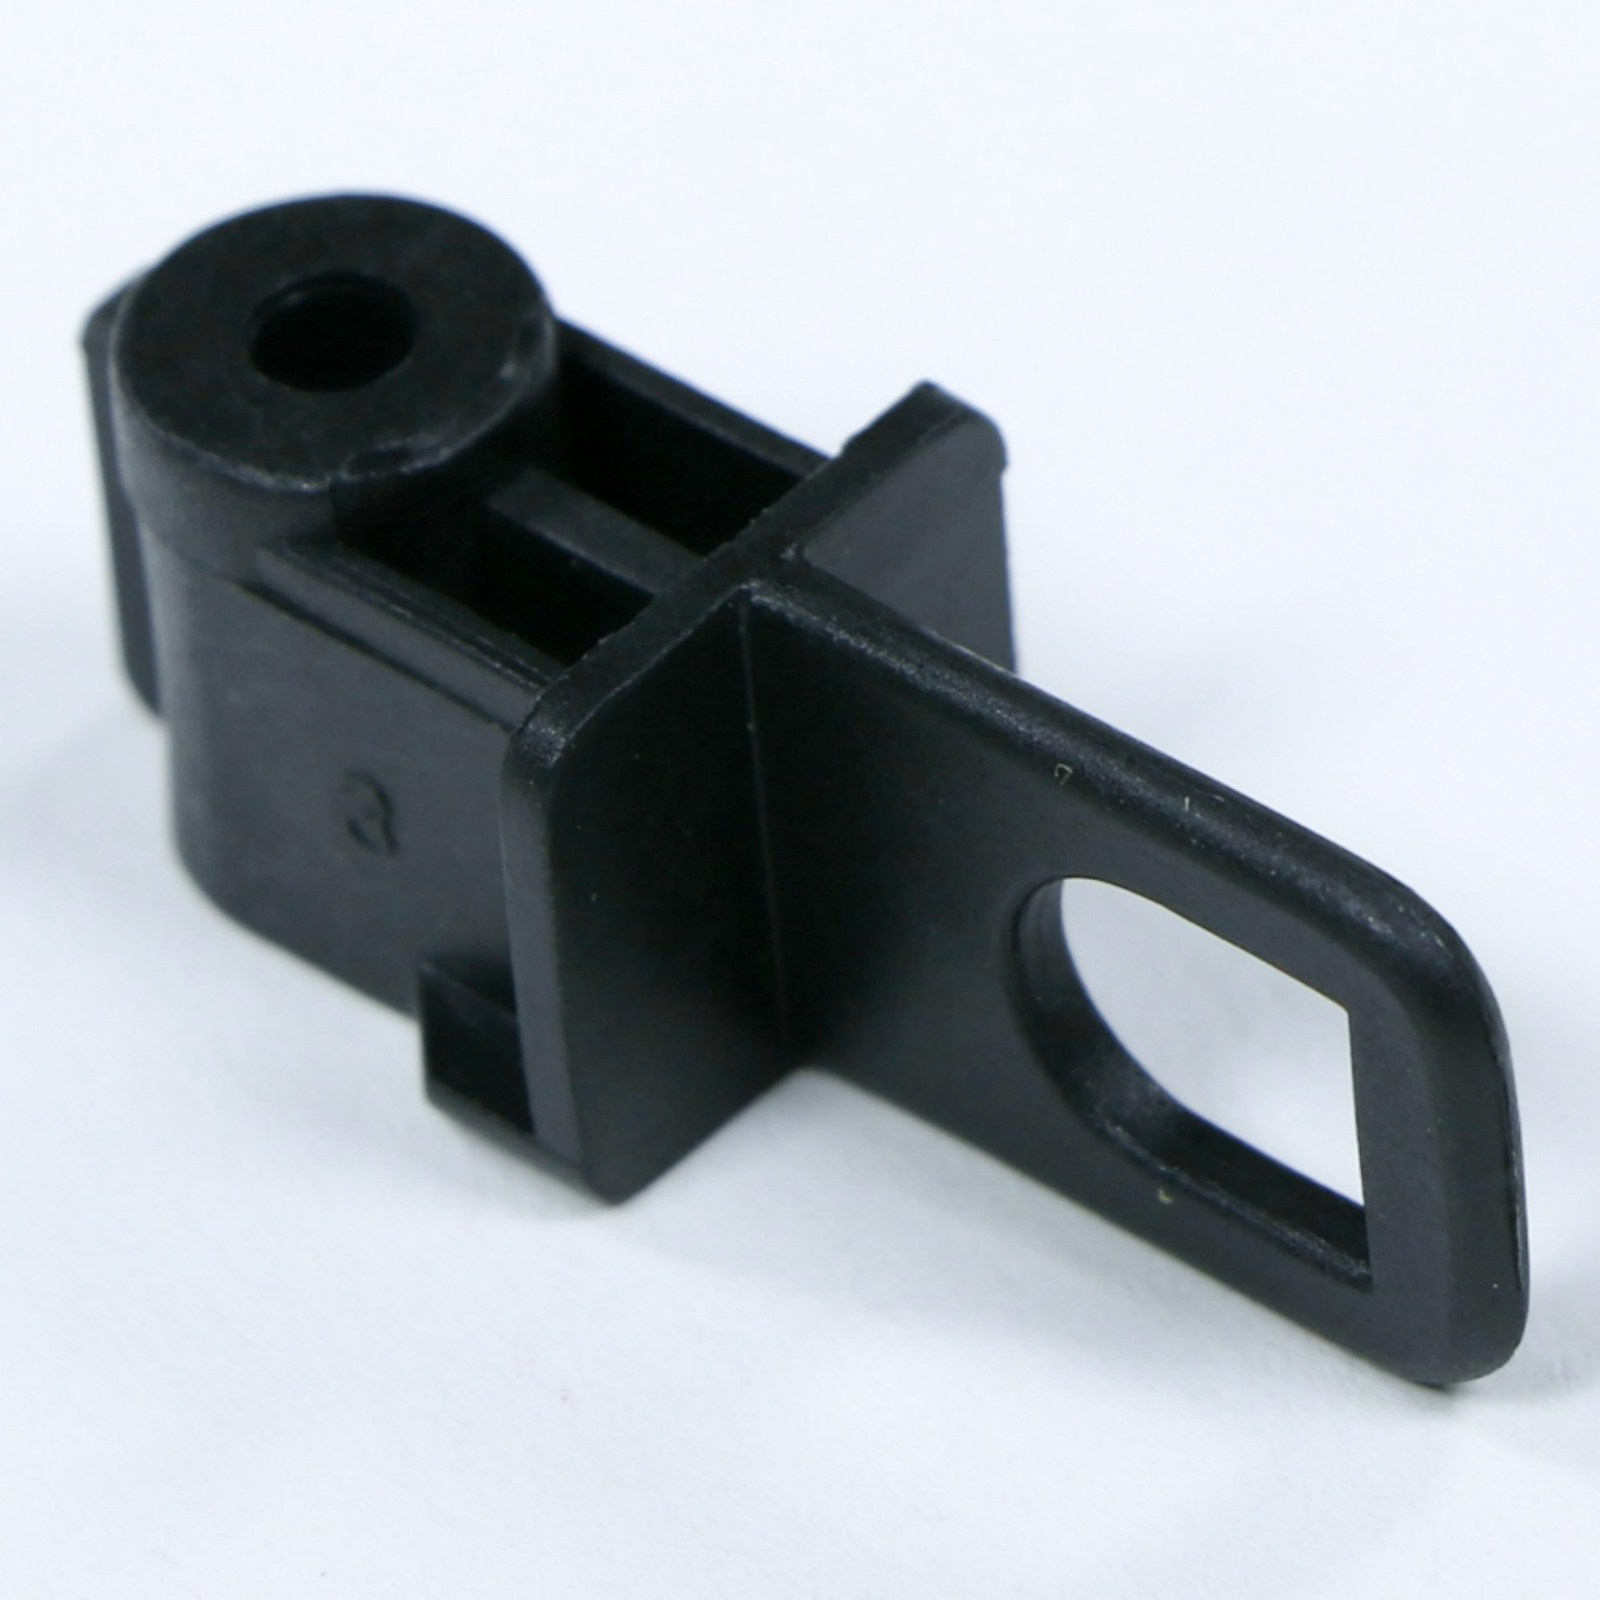 Primary image for 4393913 WHIRLPOOL Microwave door latch